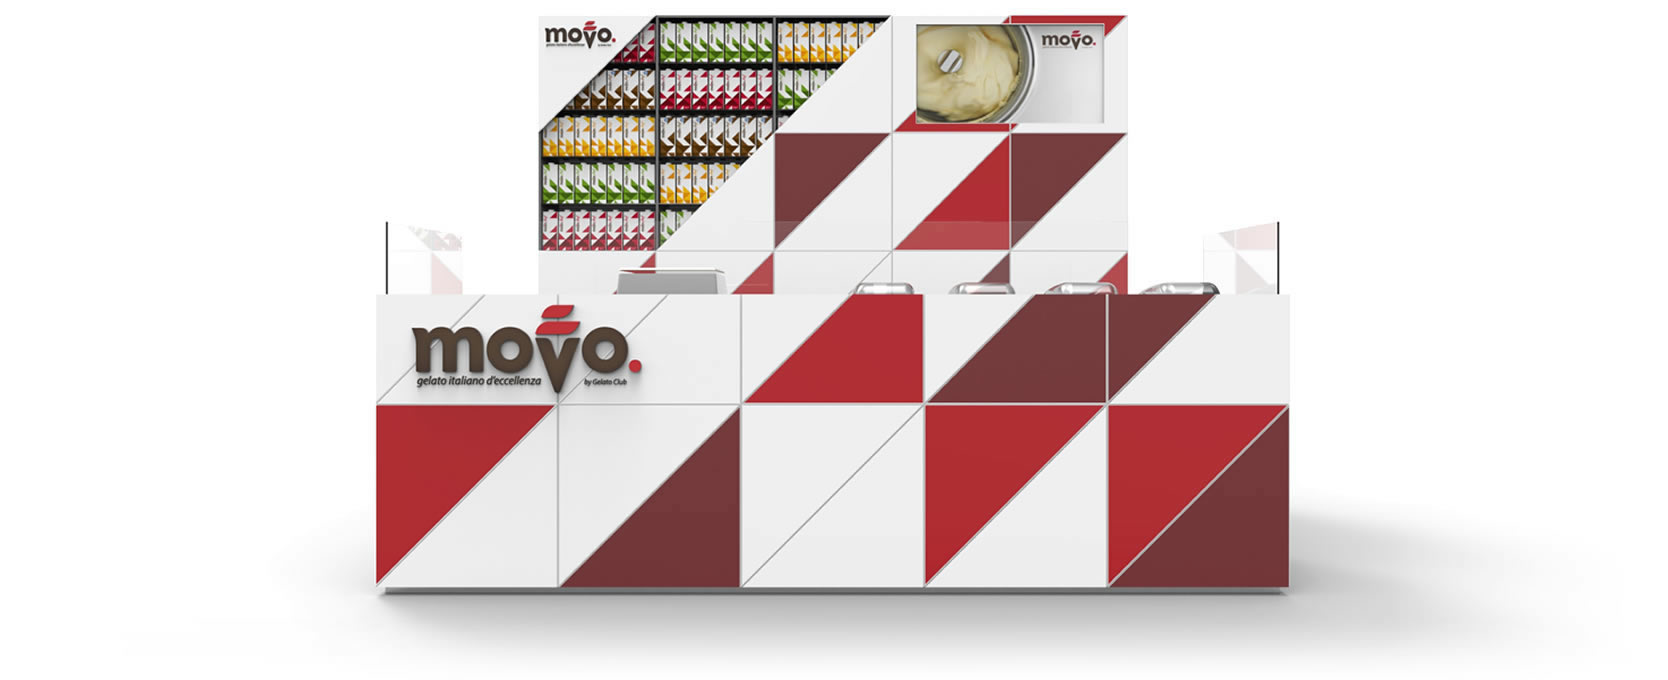 Movo Commercial.jpg